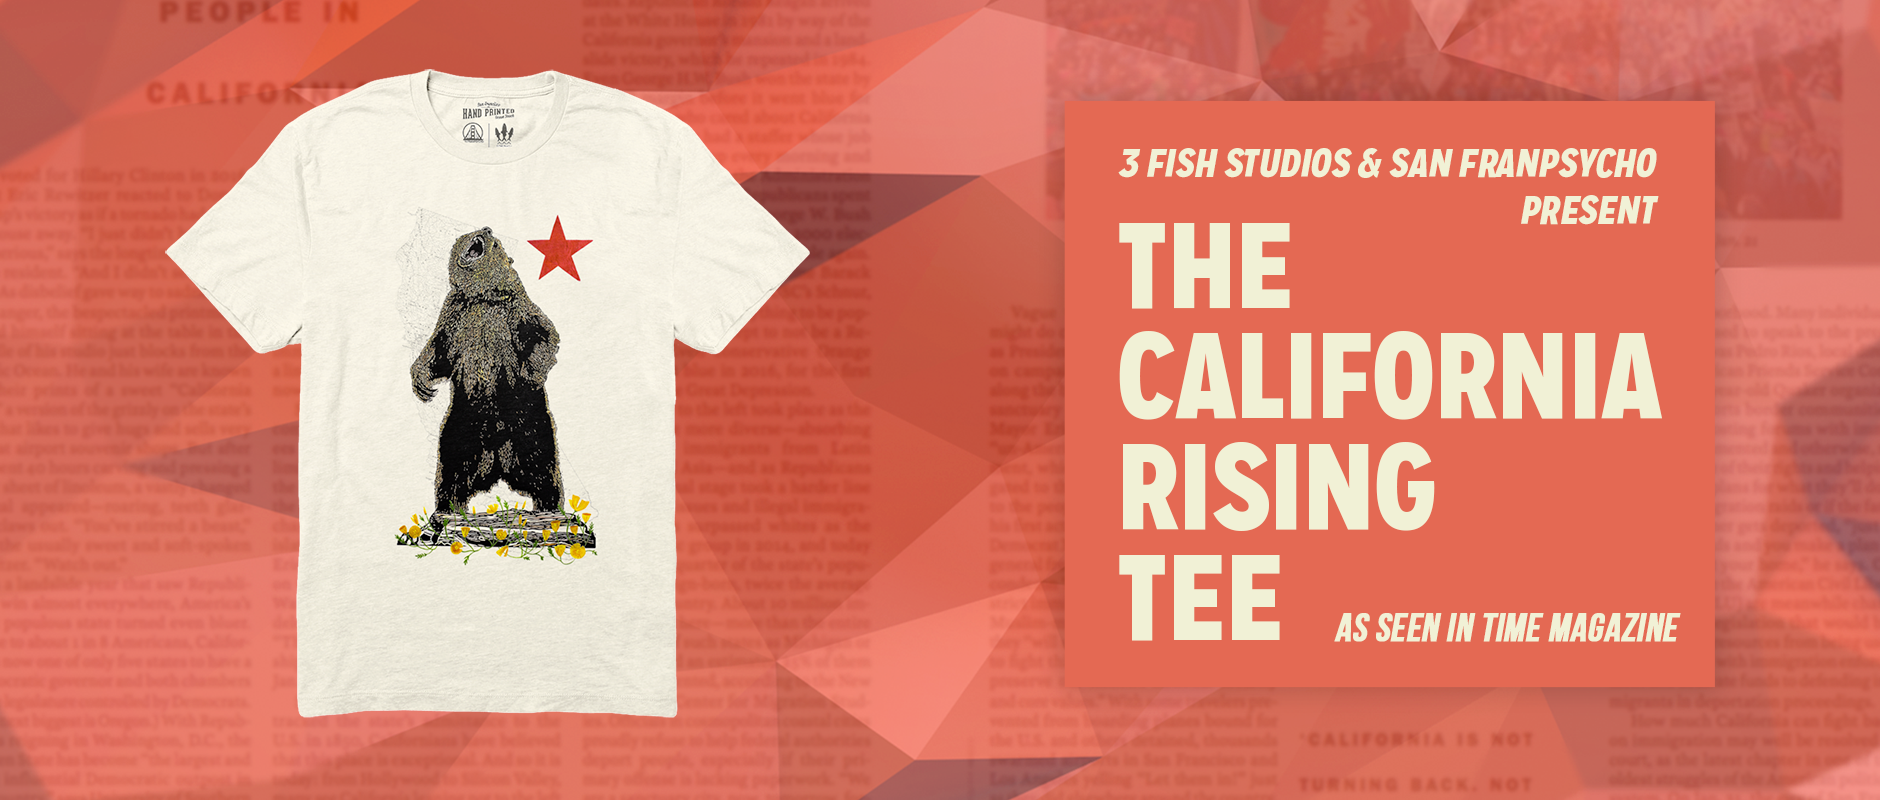 Get the new California Rising tee